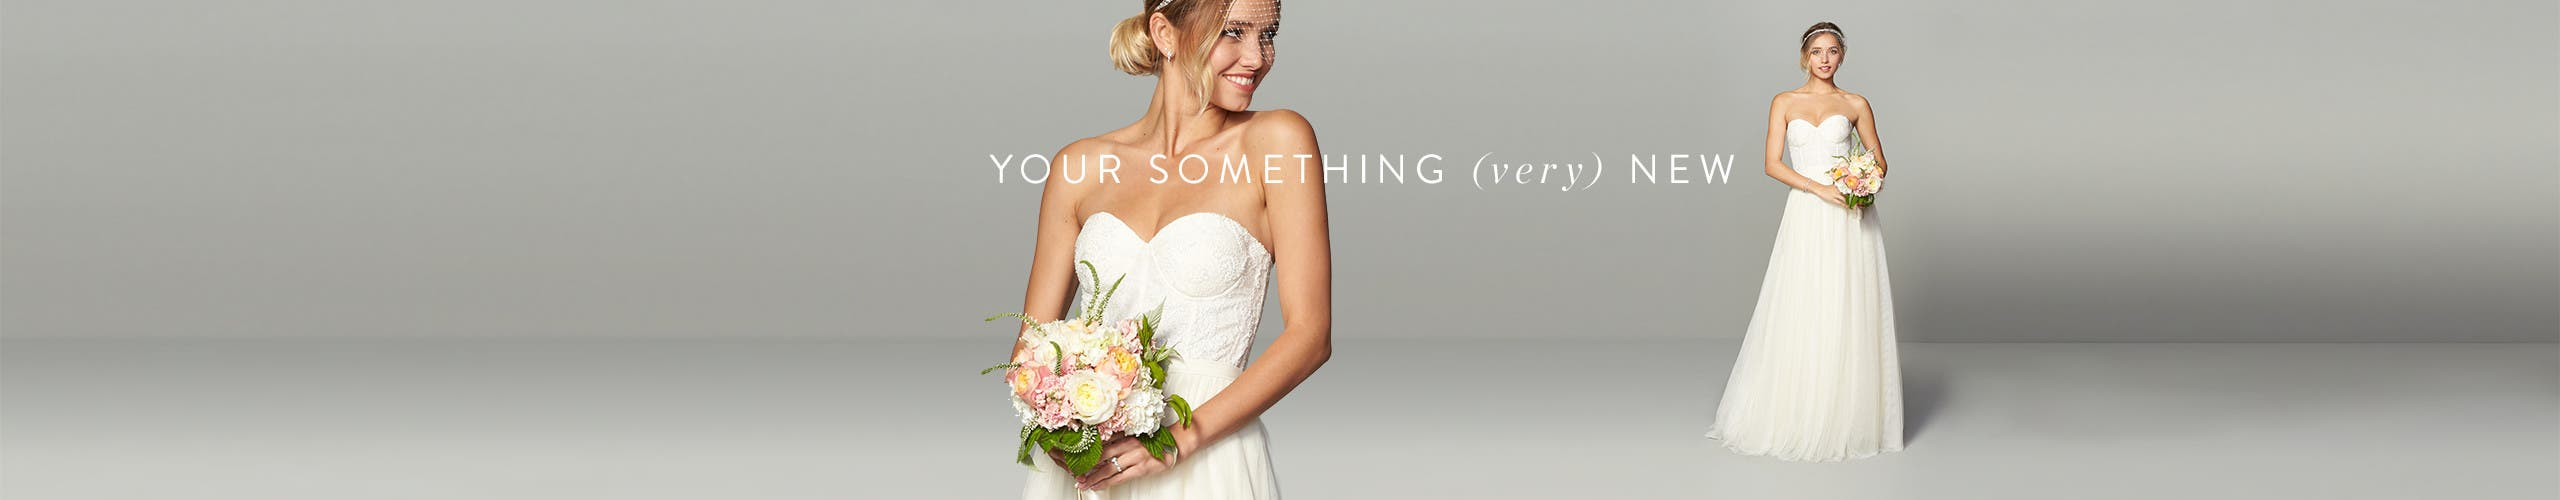 Your Something Very New: modern wedding dresses.